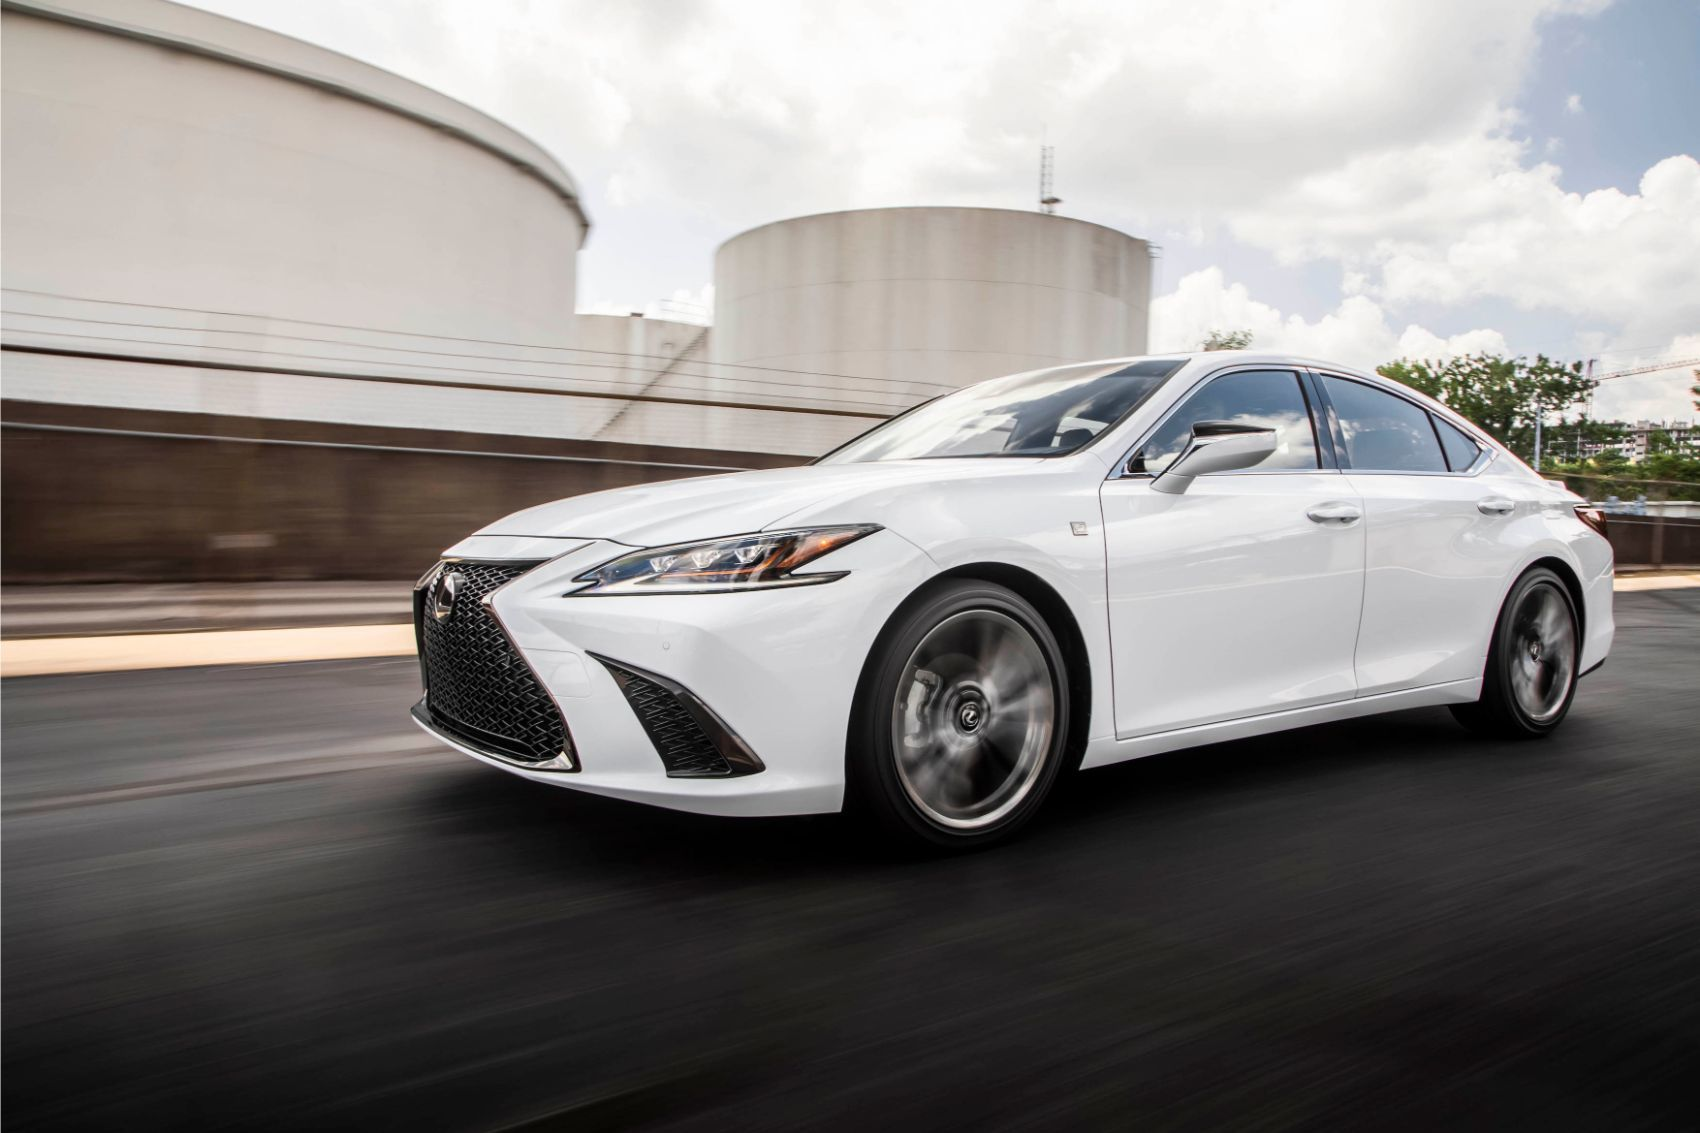 2019 Lexus Es 350 F Sport Review Well Balanced For The Daily Drive